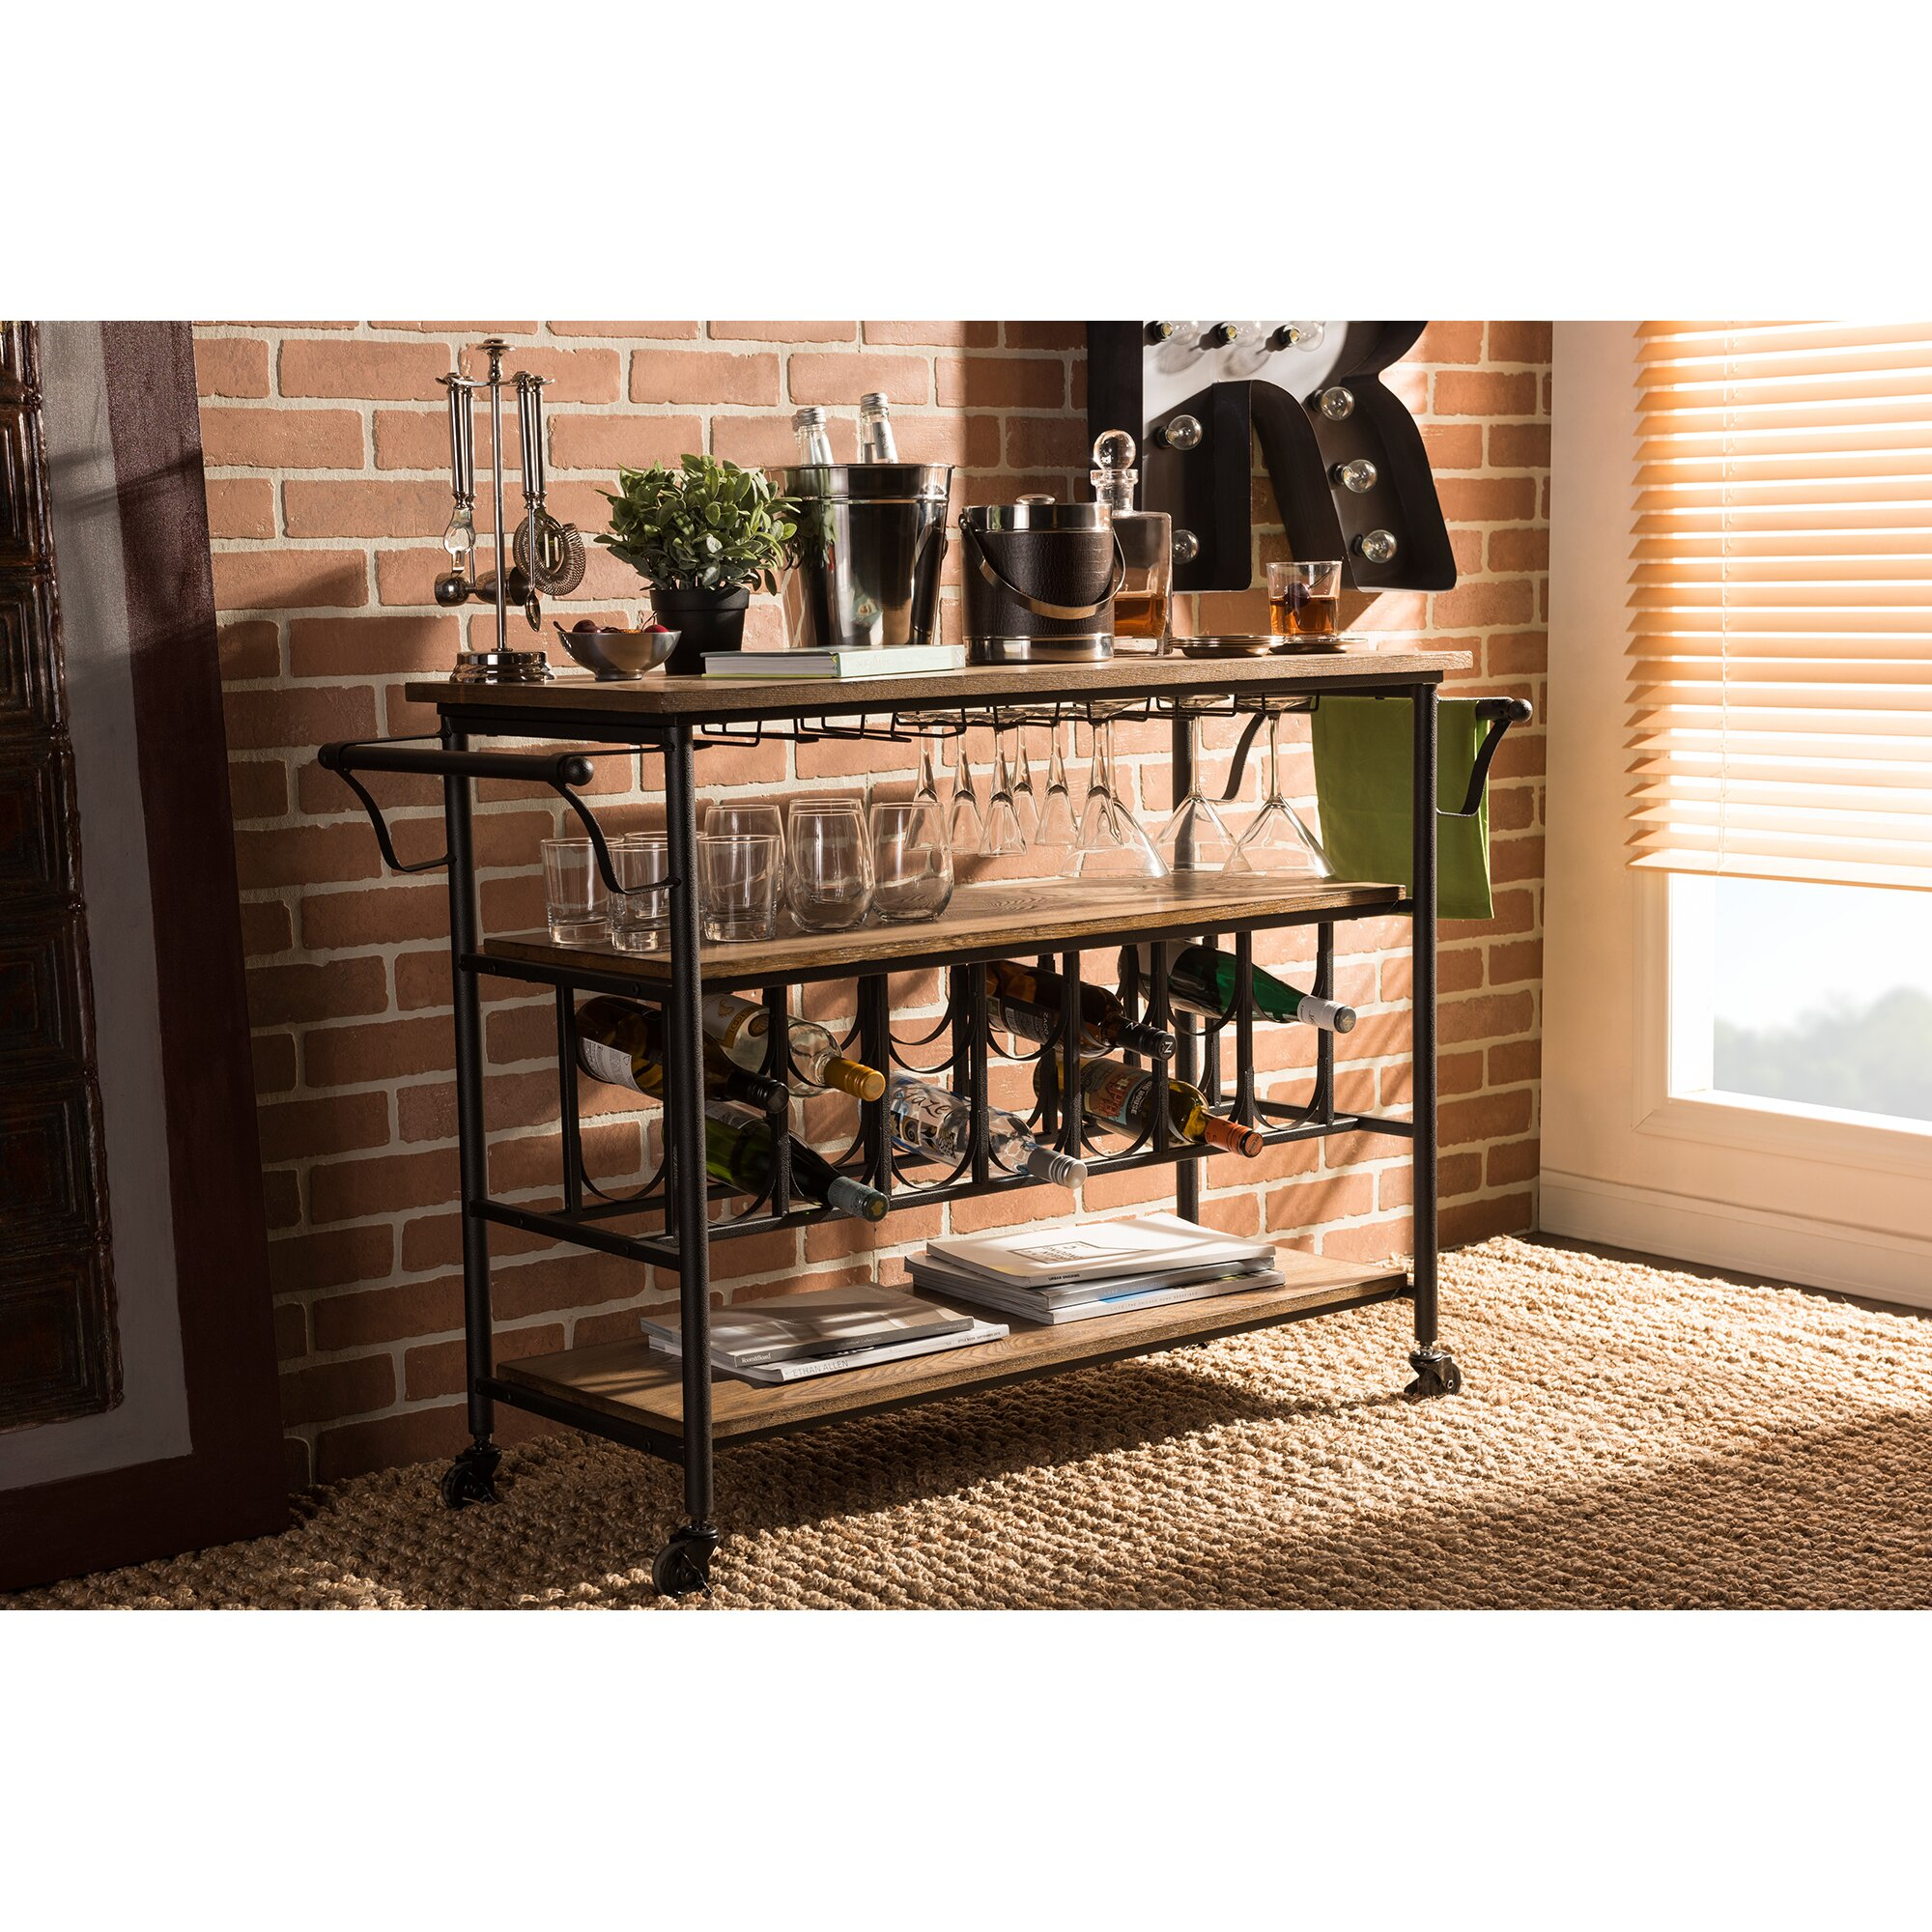 Pics Of Rustic Industrial Kitchen: Wholesale Interiors Bradford Serving Cart & Reviews